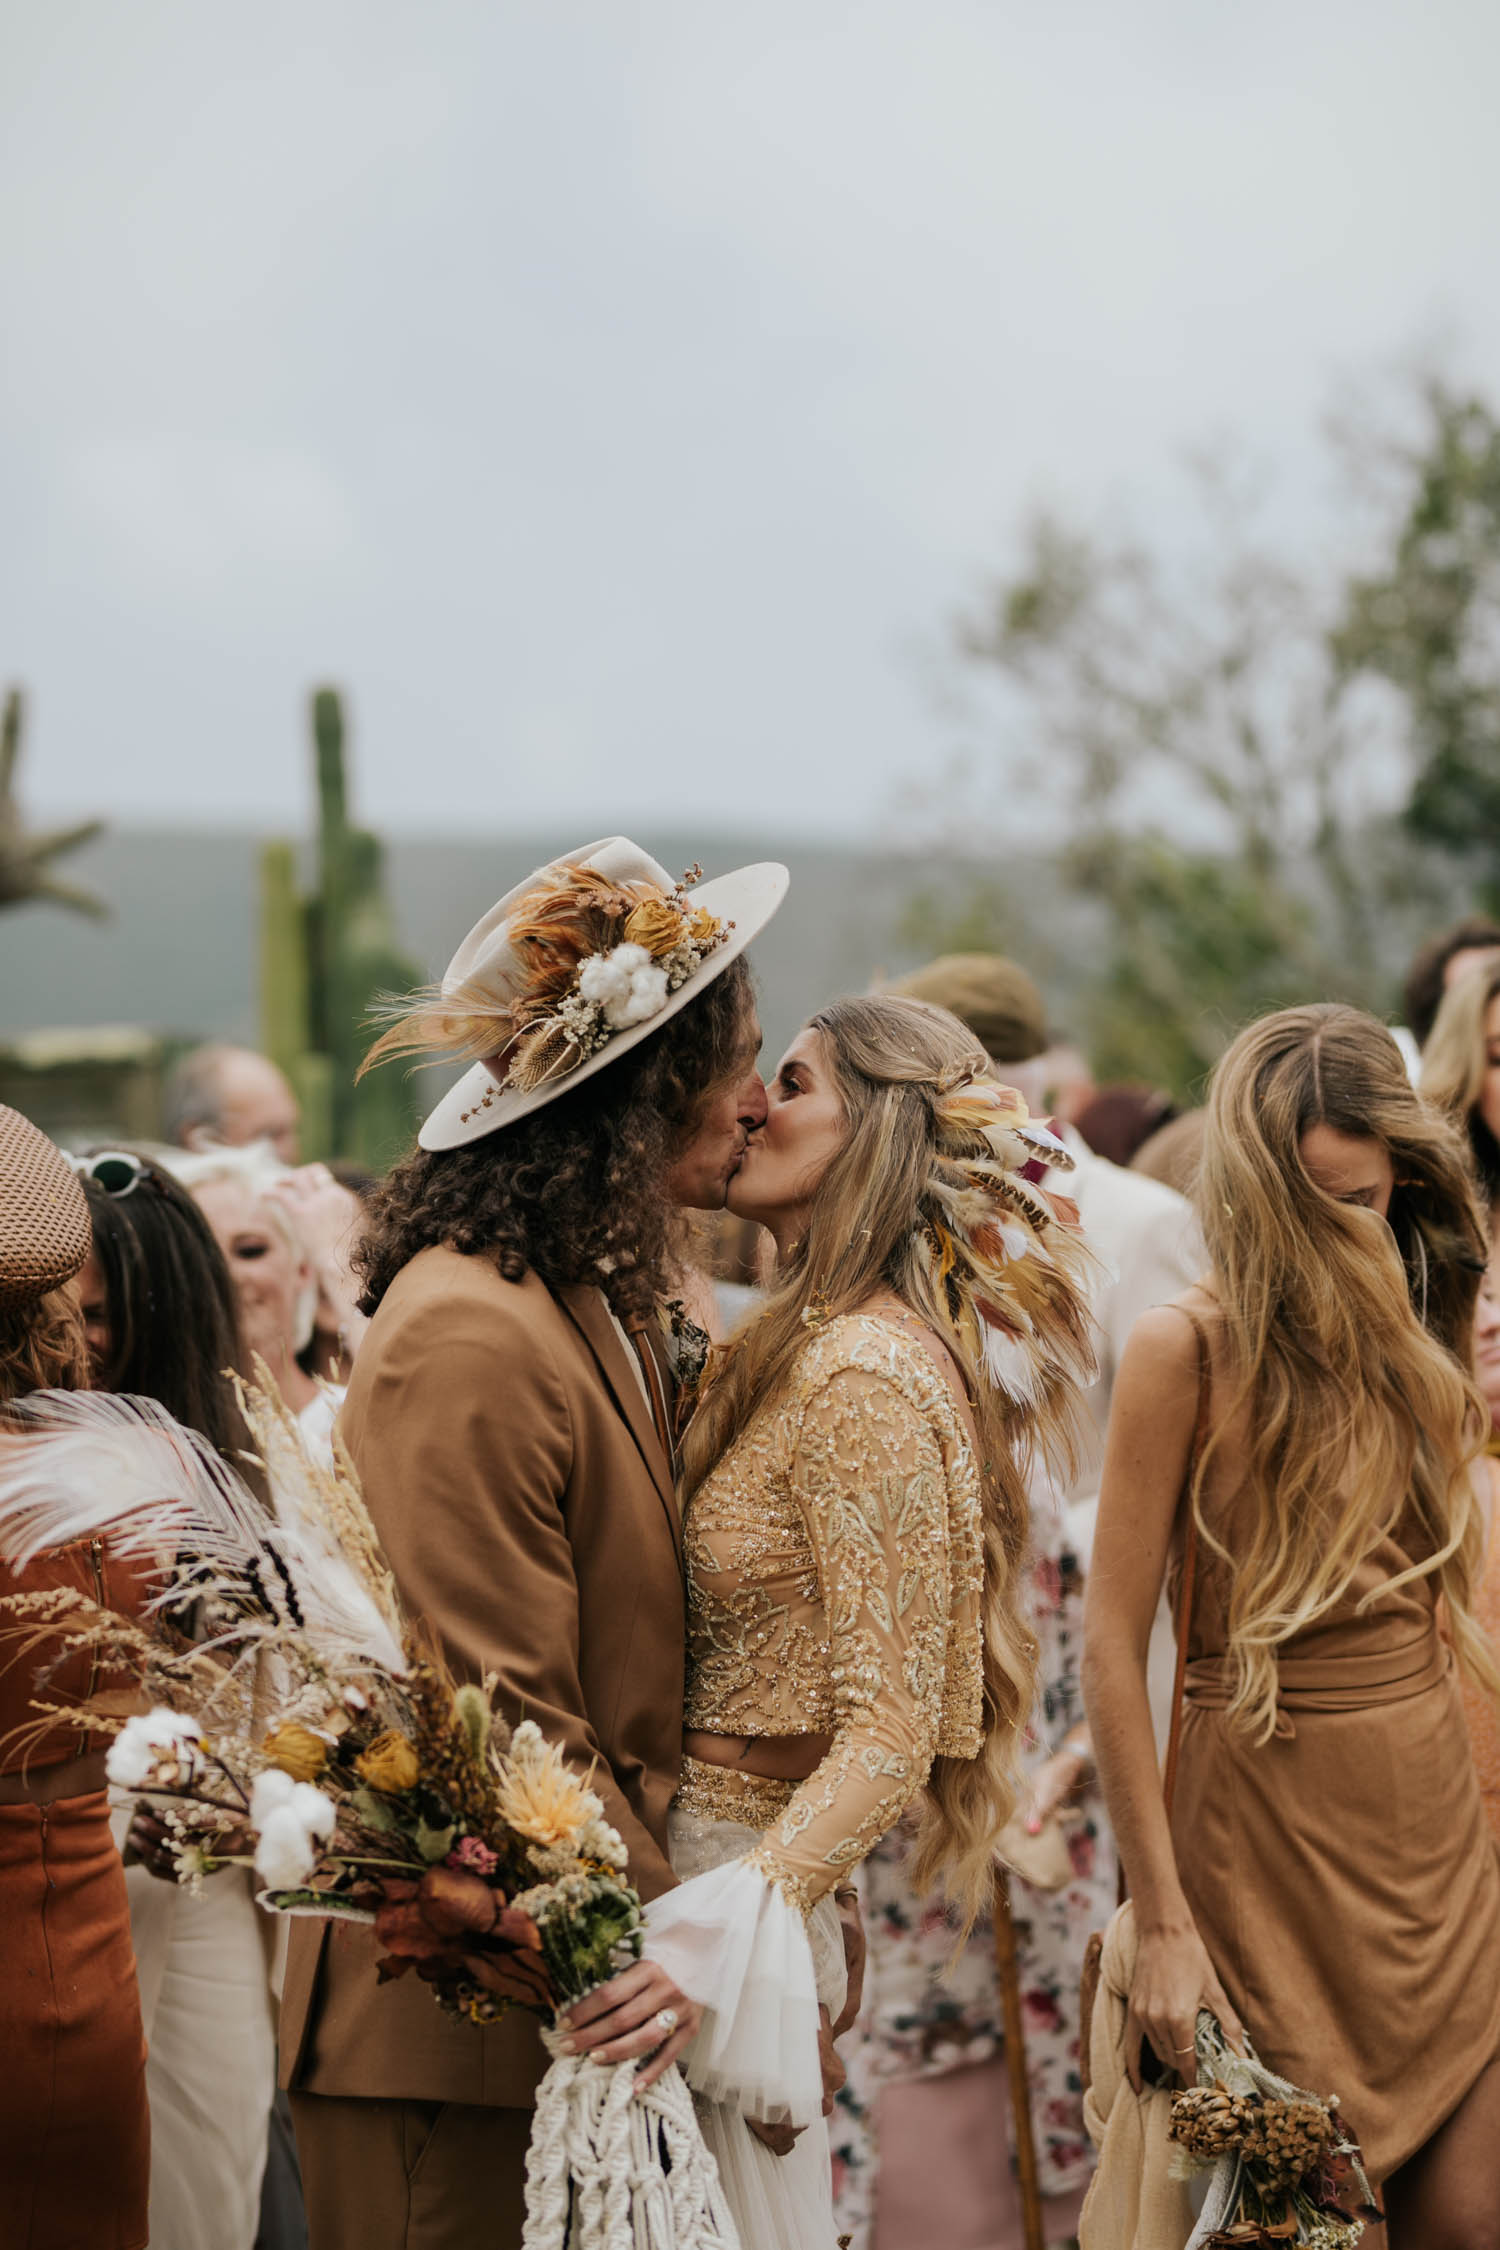 Candid moment of bride and groom kissing at intimate destination wedding in South Africa